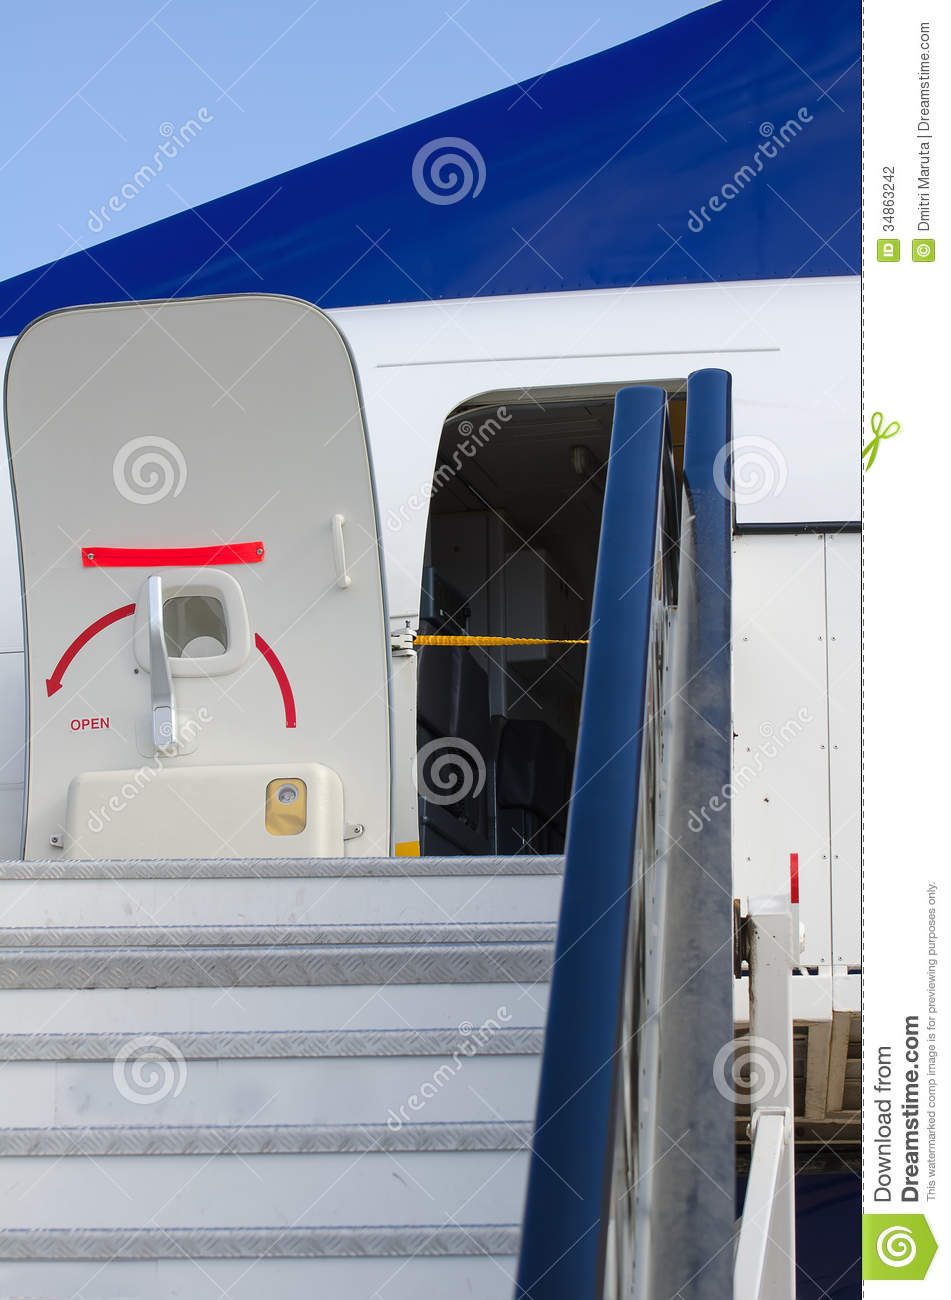 Passenger Boarding Stairs Stock Photography.